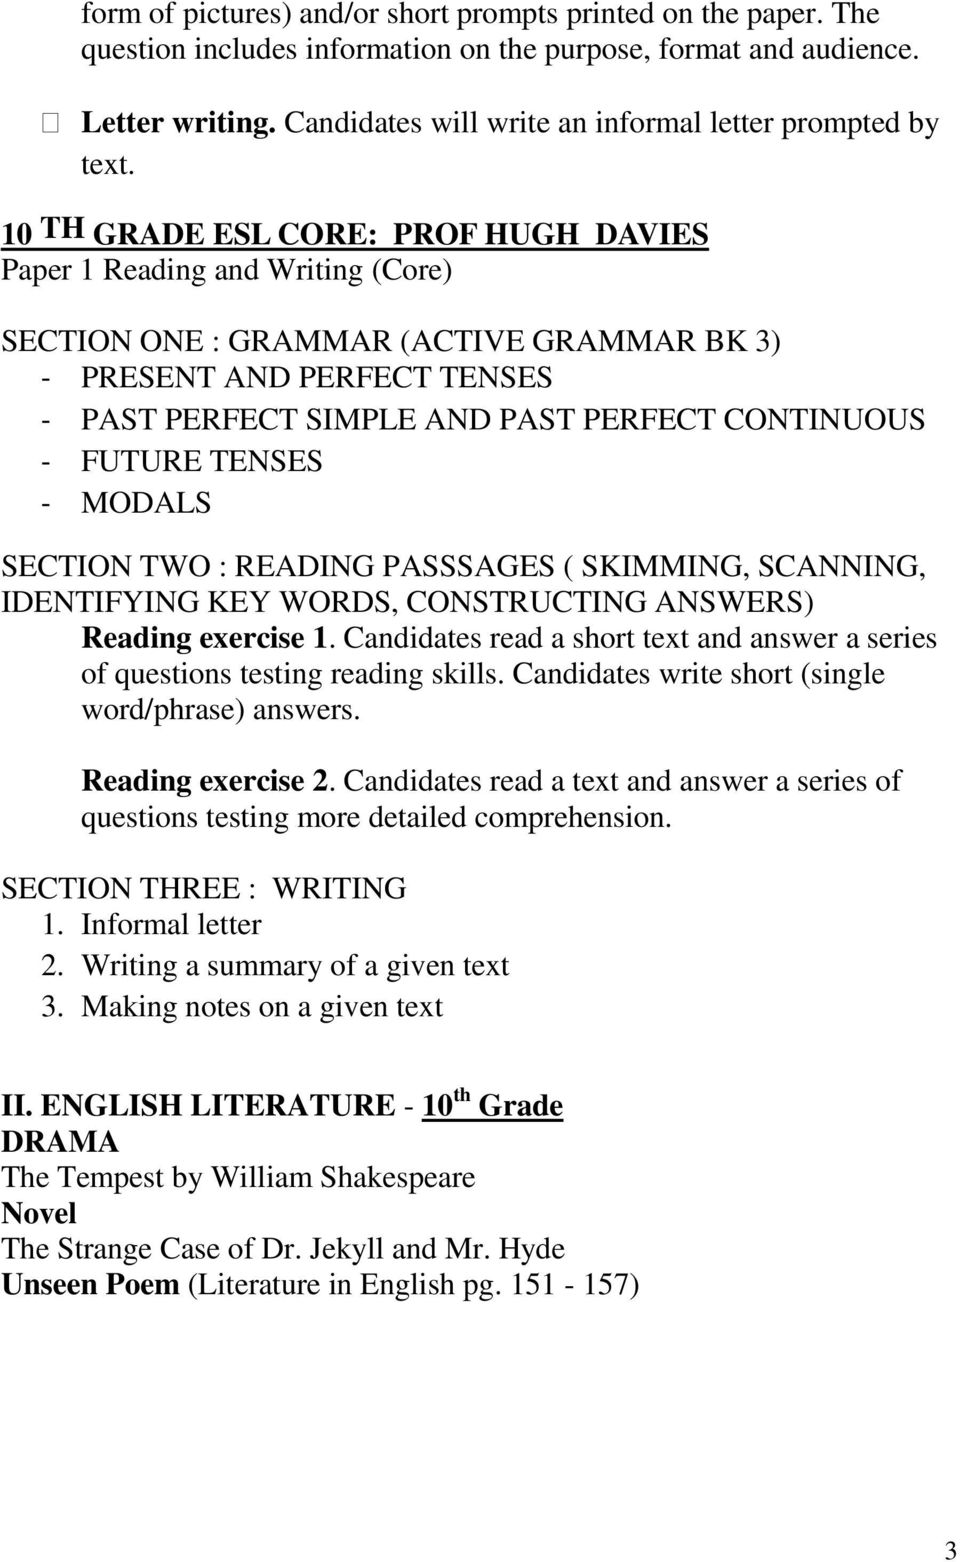 10 TH GRADE ESL CORE: PROF HUGH DAVIES Paper 1 Reading and Writing (Core) SECTION ONE : GRAMMAR (ACTIVE GRAMMAR BK 3) - PRESENT AND PERFECT TENSES - PAST PERFECT SIMPLE AND PAST PERFECT CONTINUOUS -